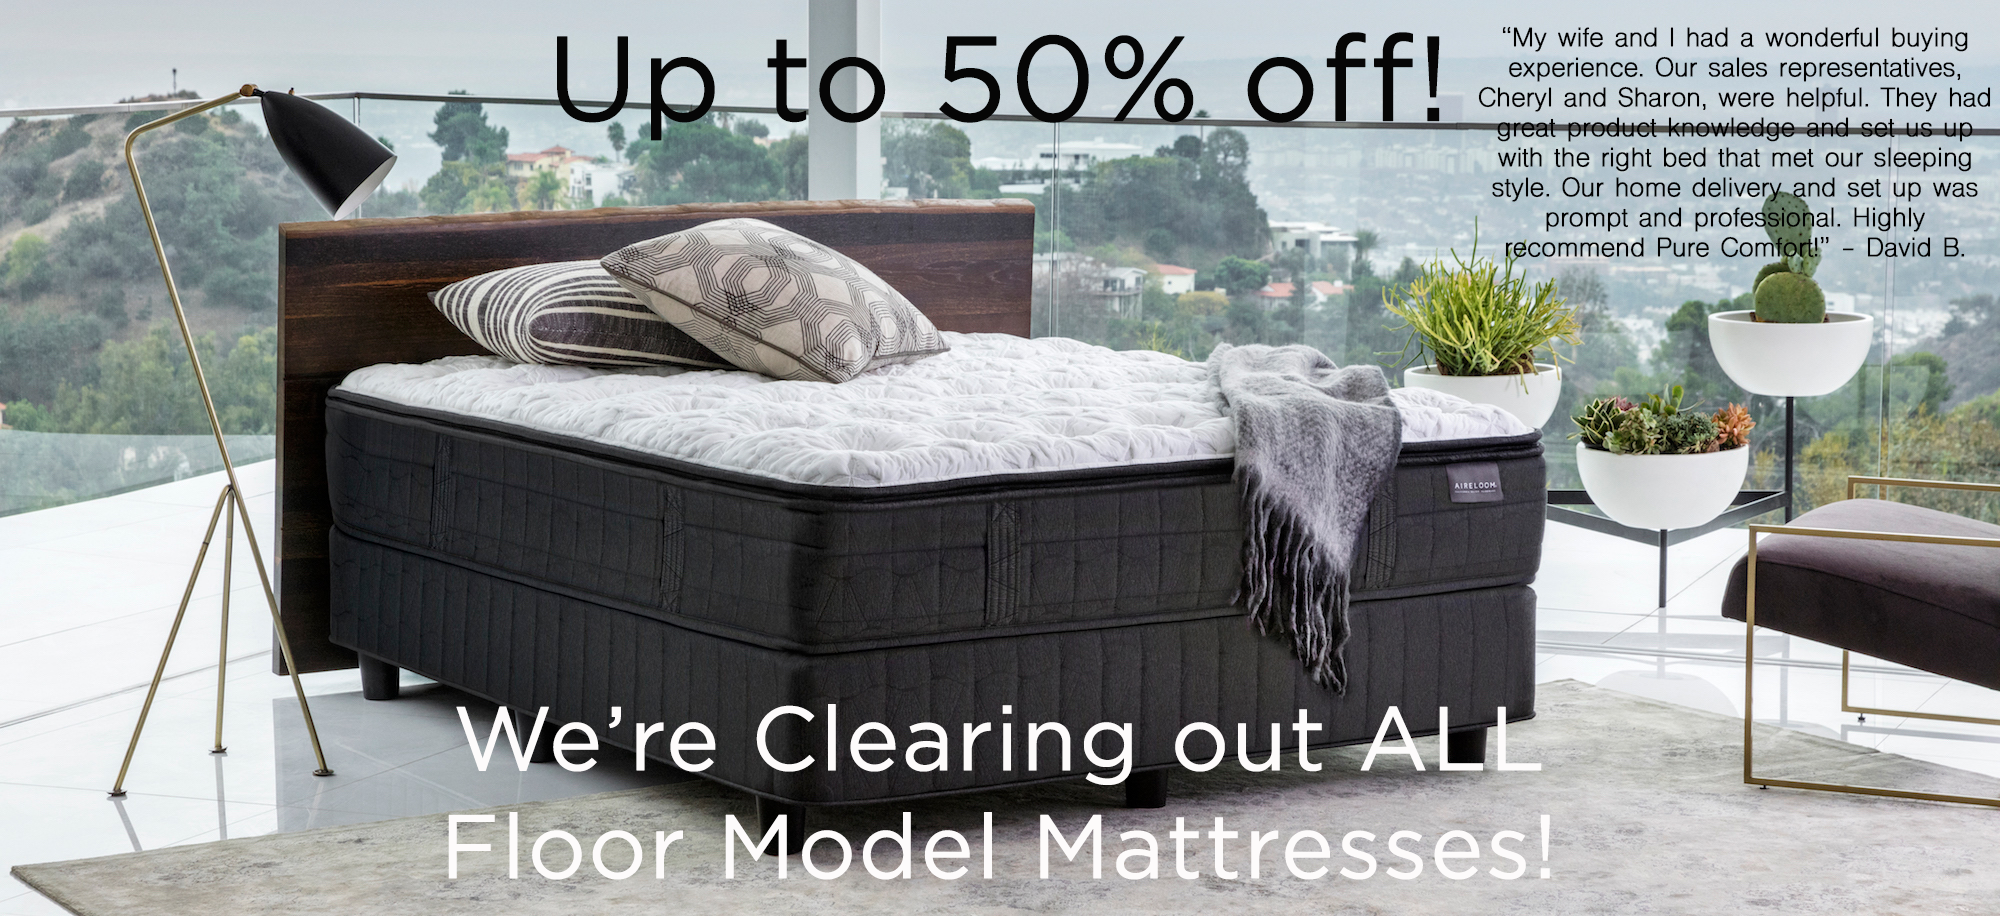 Latex Mattress clearance sale 50% discounts